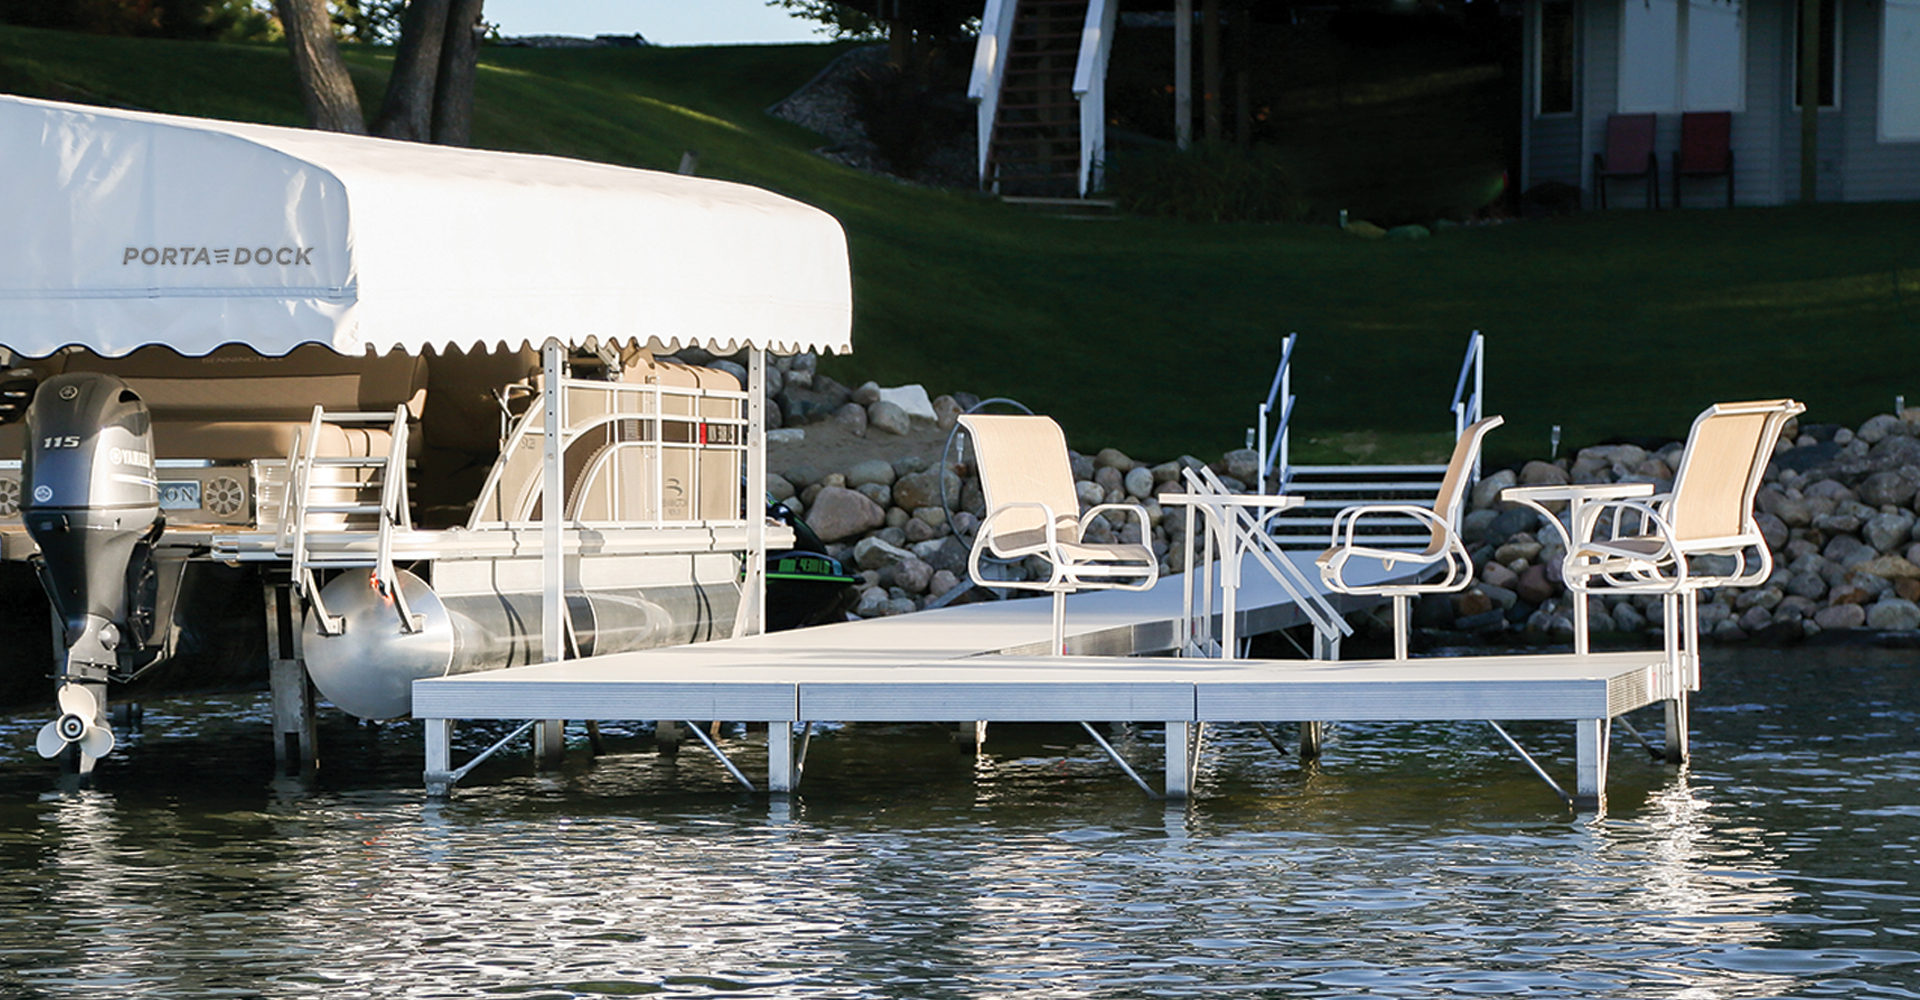 Porta-Dock multi-dock in the water with accessories and boat lift